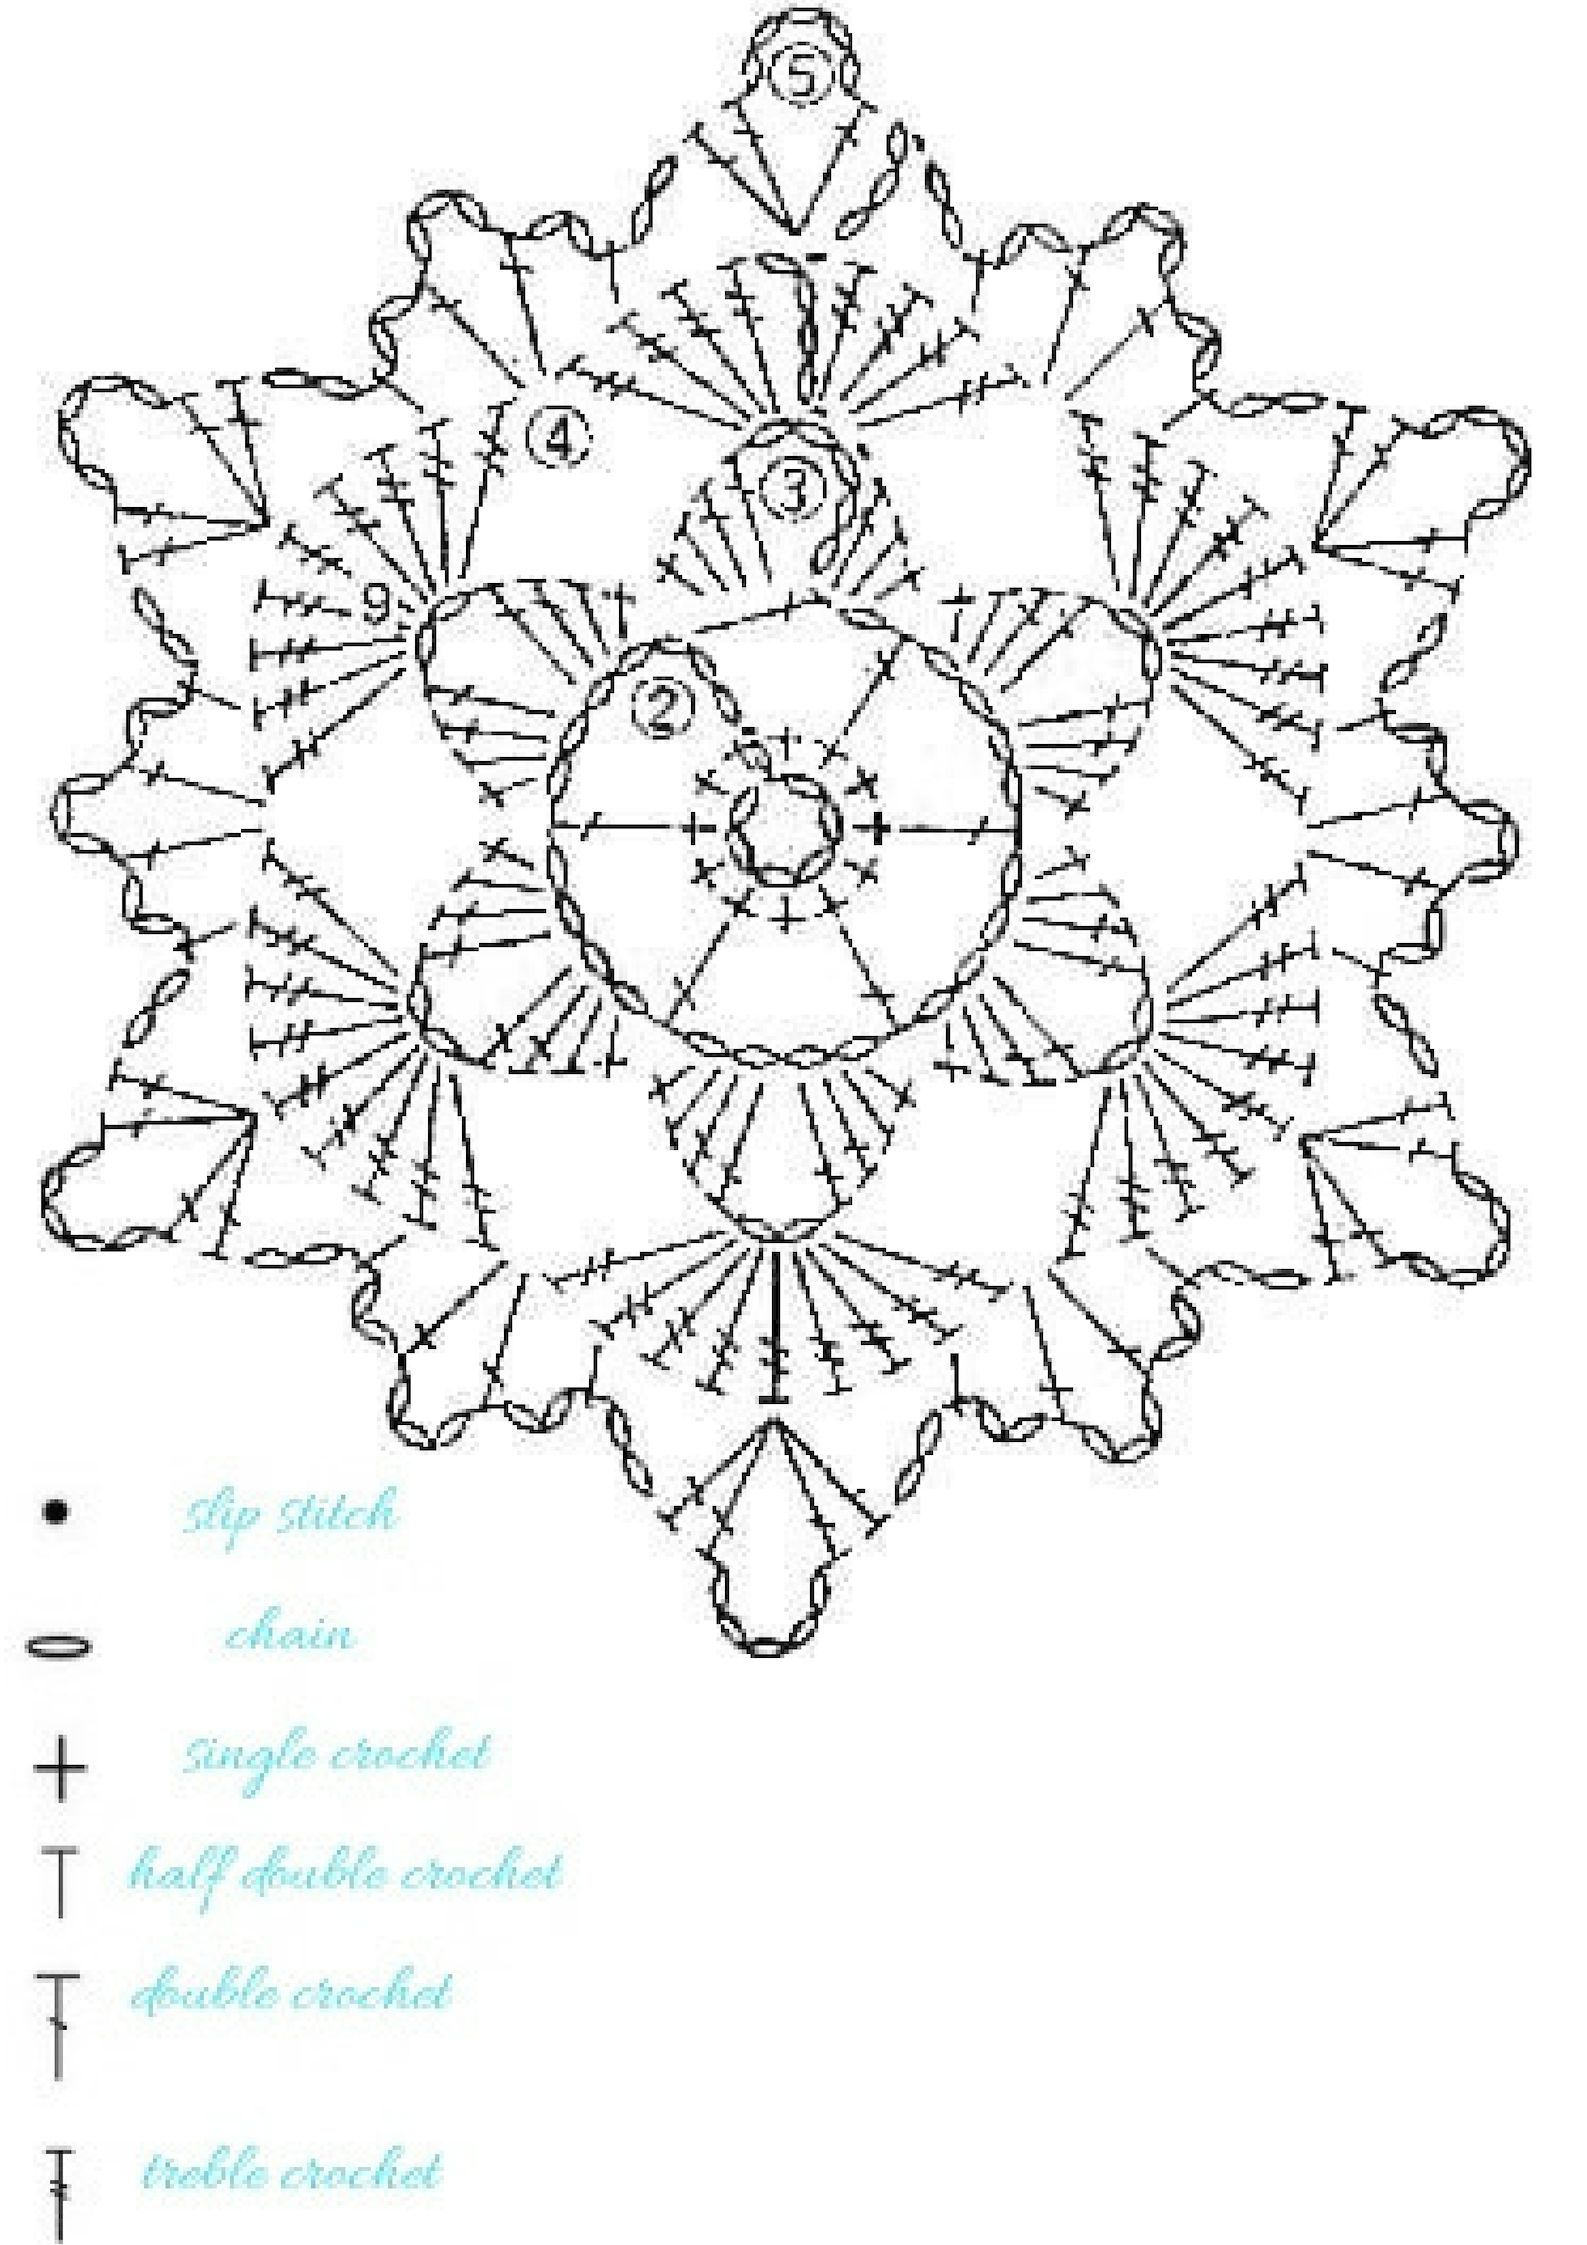 15 Crochet Snowflakes Patterns Free Patterns Turcoaz Cu Vanilie Crochet Snowflake Pattern Christmas Crochet Patterns Crochet Snowflakes